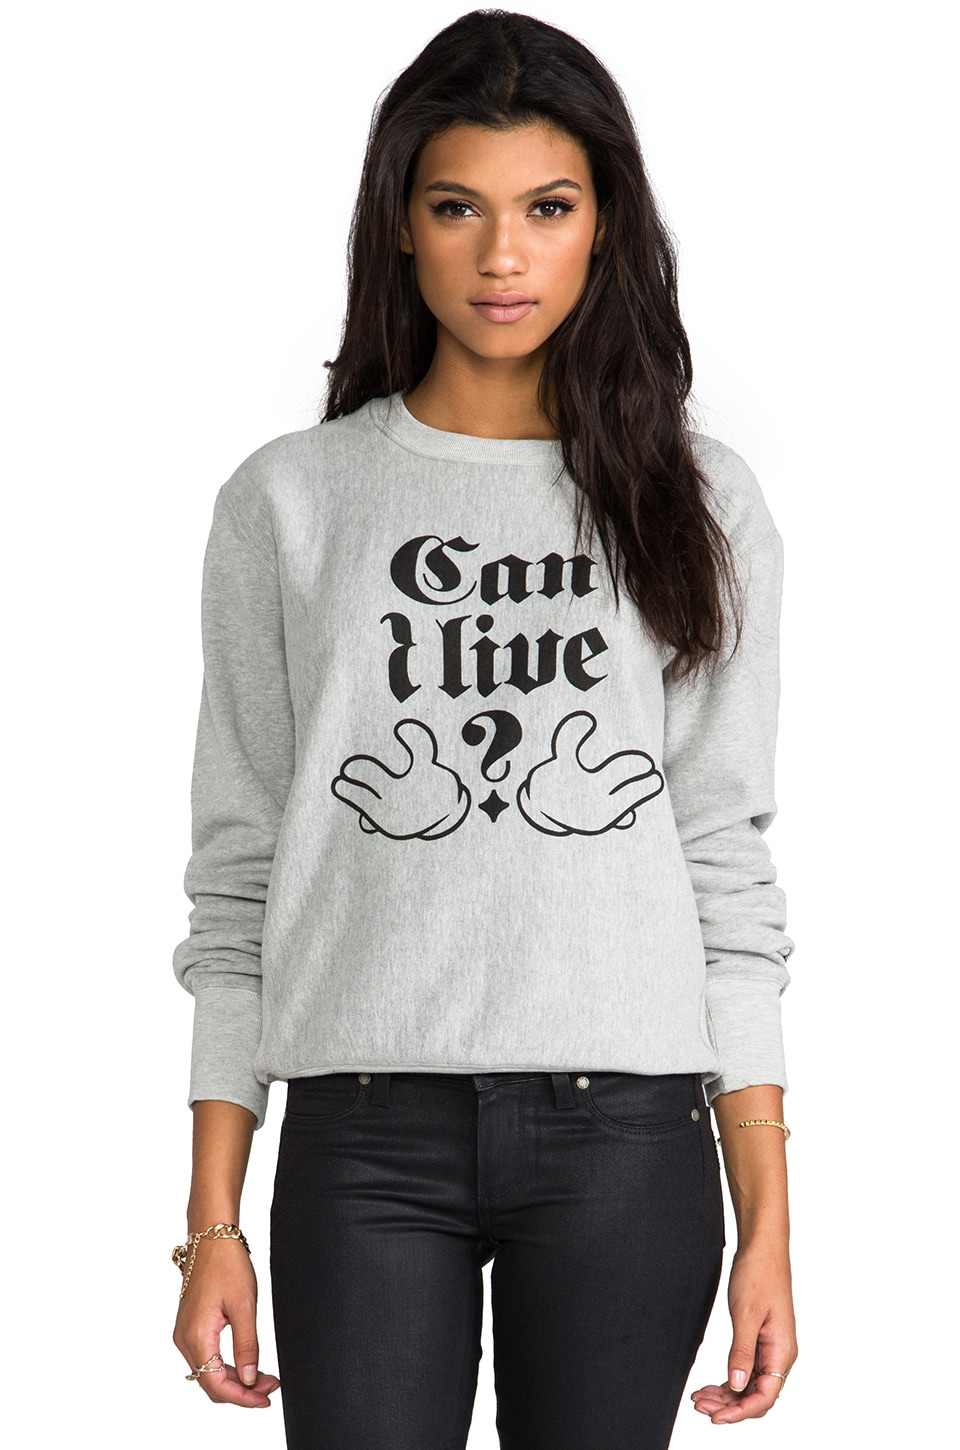 B-side by Wale Can I Live Sweatshirt in Heather Grey/Black